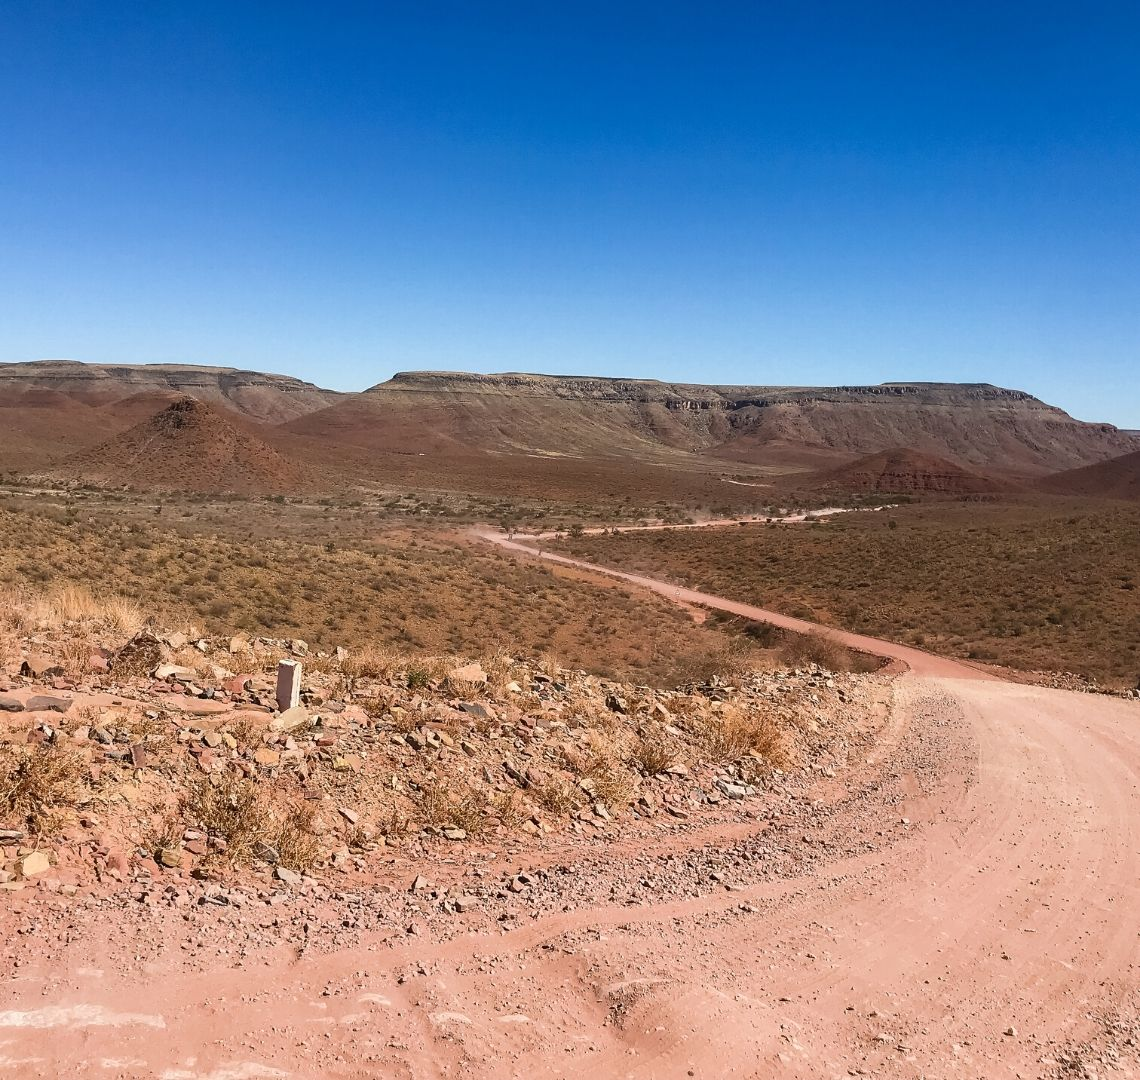 Driving for 2 weeks in Namibia is relentless, this image is of one of the many gravel roads twisting through a valley. The landscape is reddish brown with a few shrubs growing.